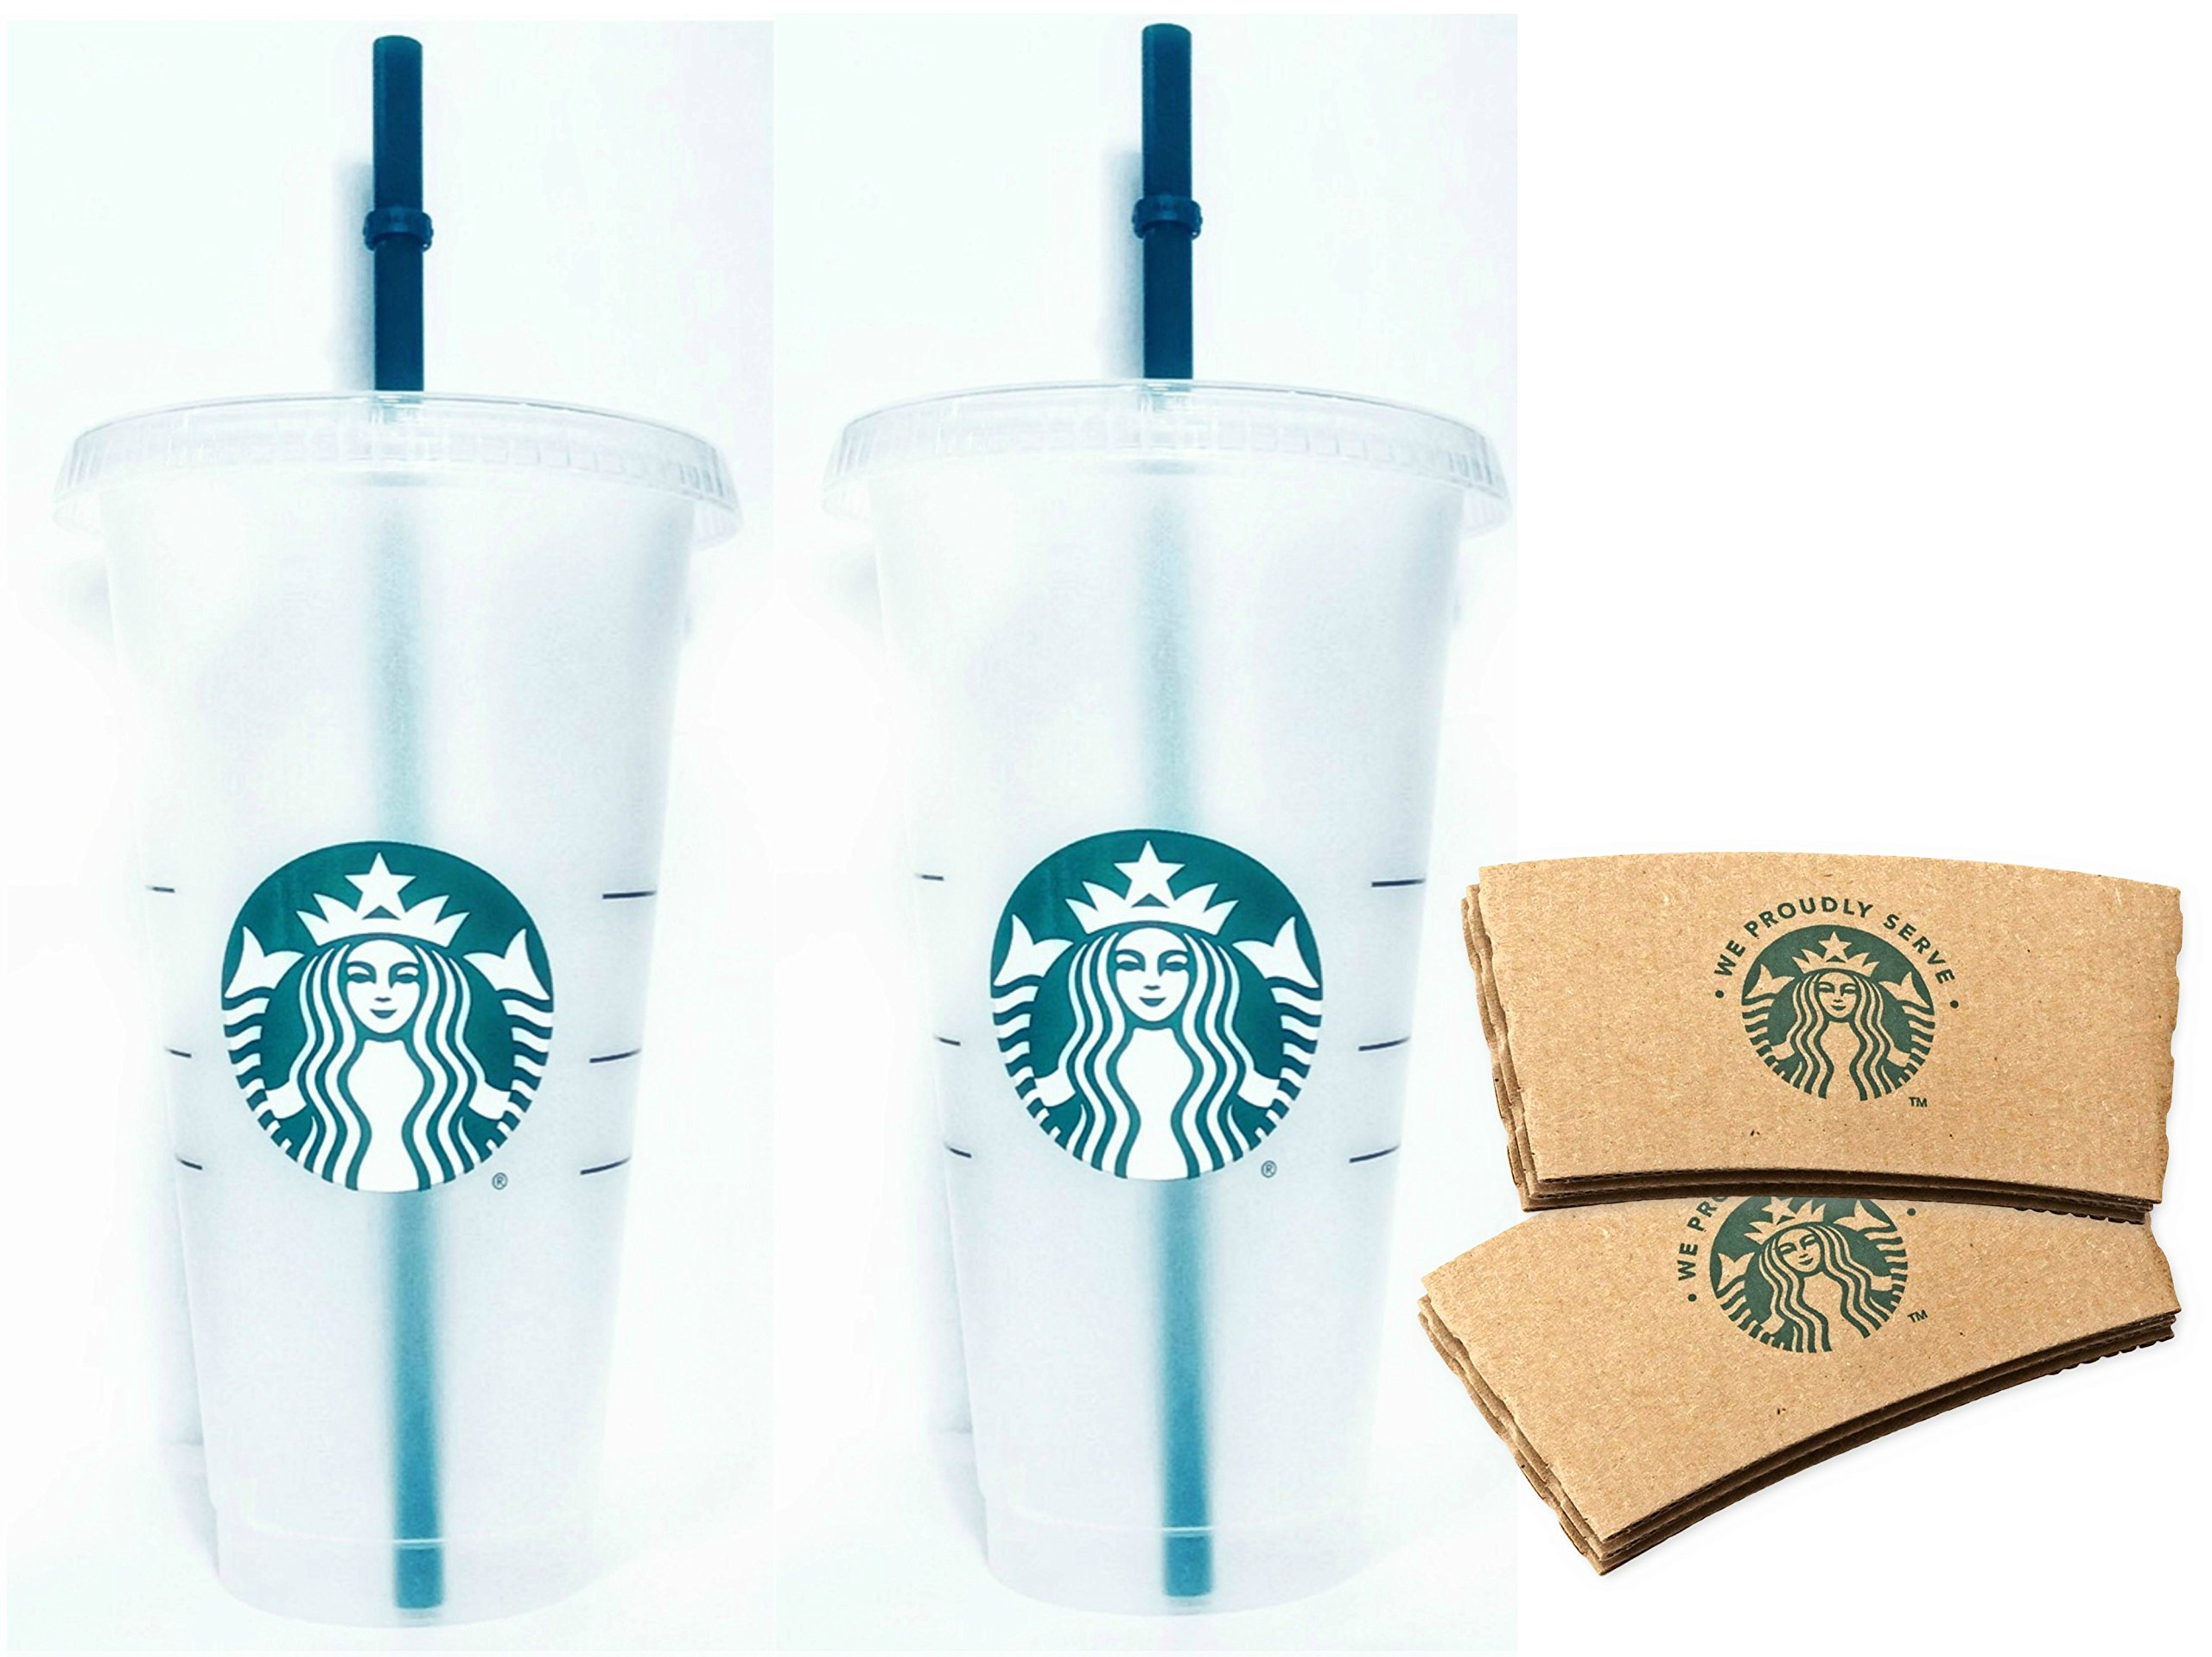 Starbucks Reusable Venti 24 fl oz Frosted Ice Cold Drink Cup Bundle Set of 2 with Sleeves by Starbucks (Image #1)